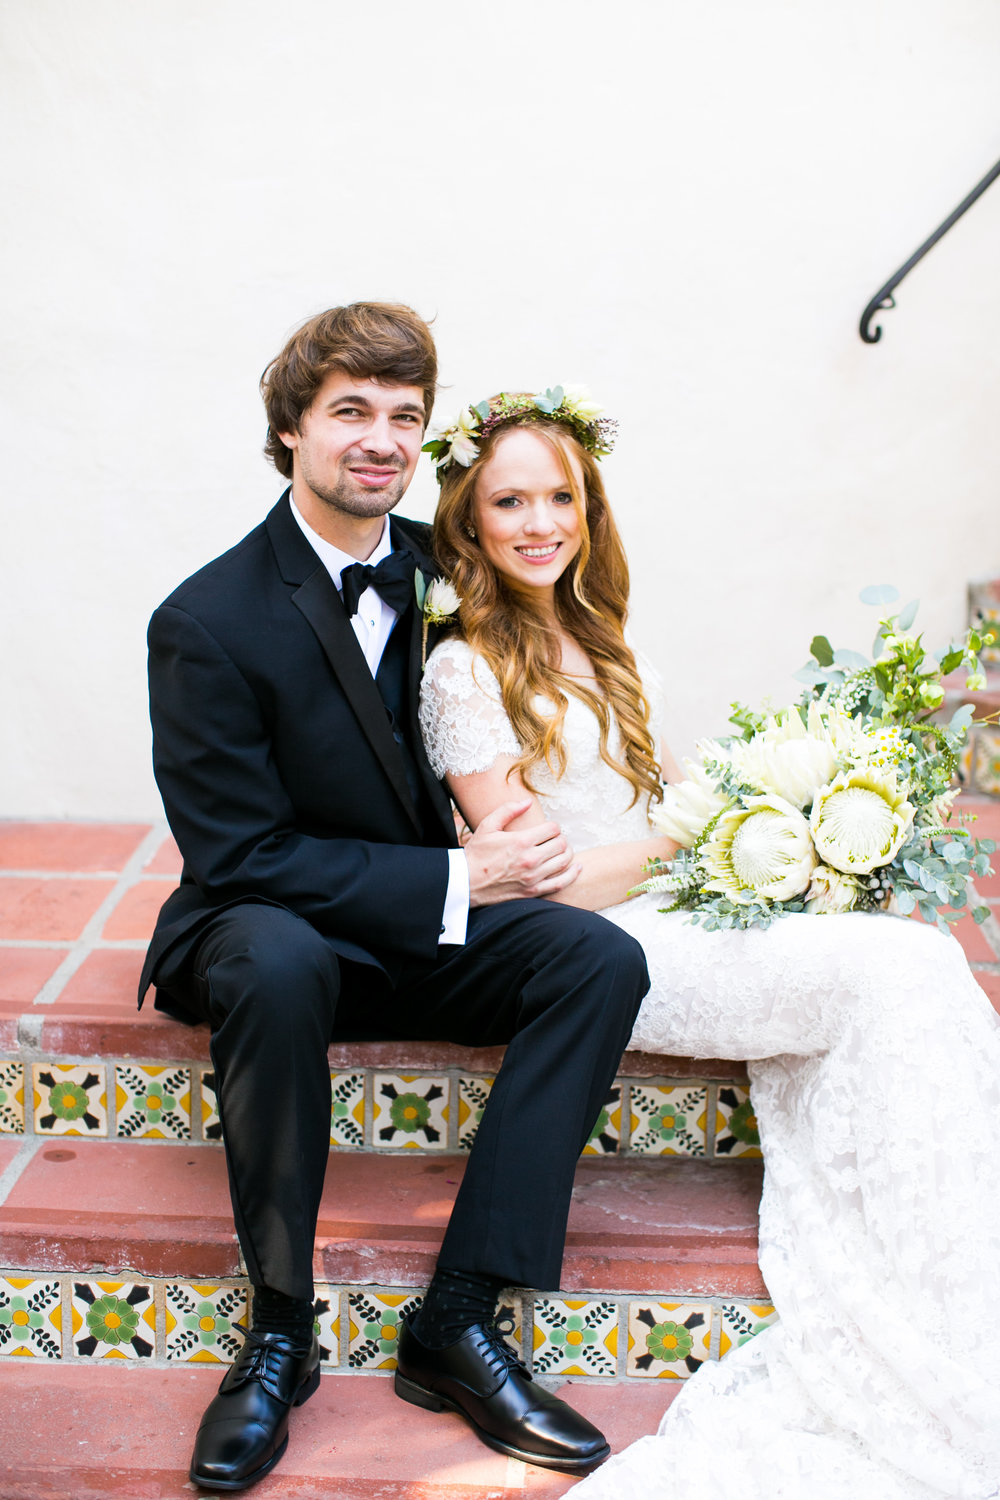 www.santabarbarawedding.com | Four Seasons Santa Barbara | Levine Fox Events | Callaway Gable Photo | Bride and Groom